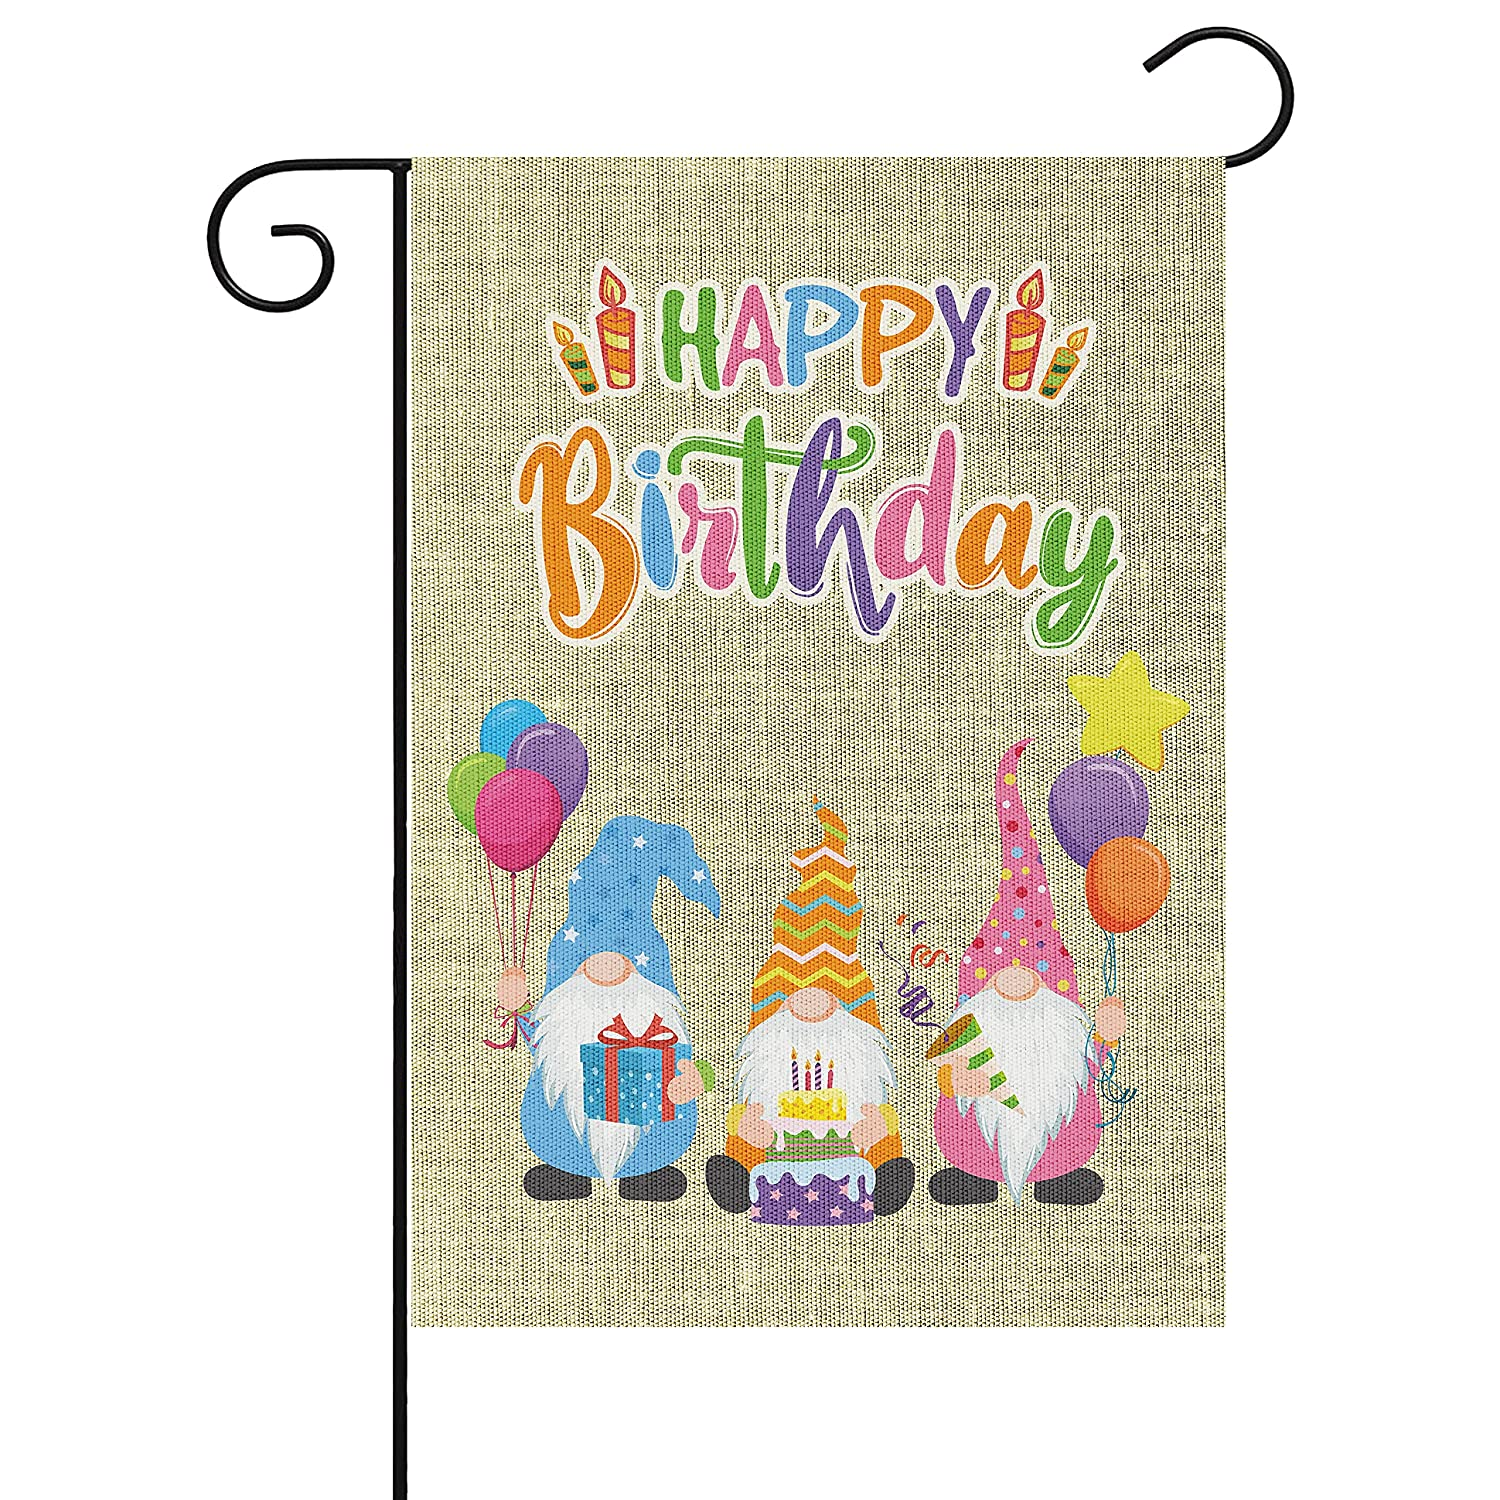 WATINC Happy Birthday Gnome Garden Flag Yard Sign Vertical Double Sided Readable Birthday Cake Gnome House Burlap Flag Banner Party Decorations Supplies for Indoor Outdoor Lawn 18.1x12.6 Inch